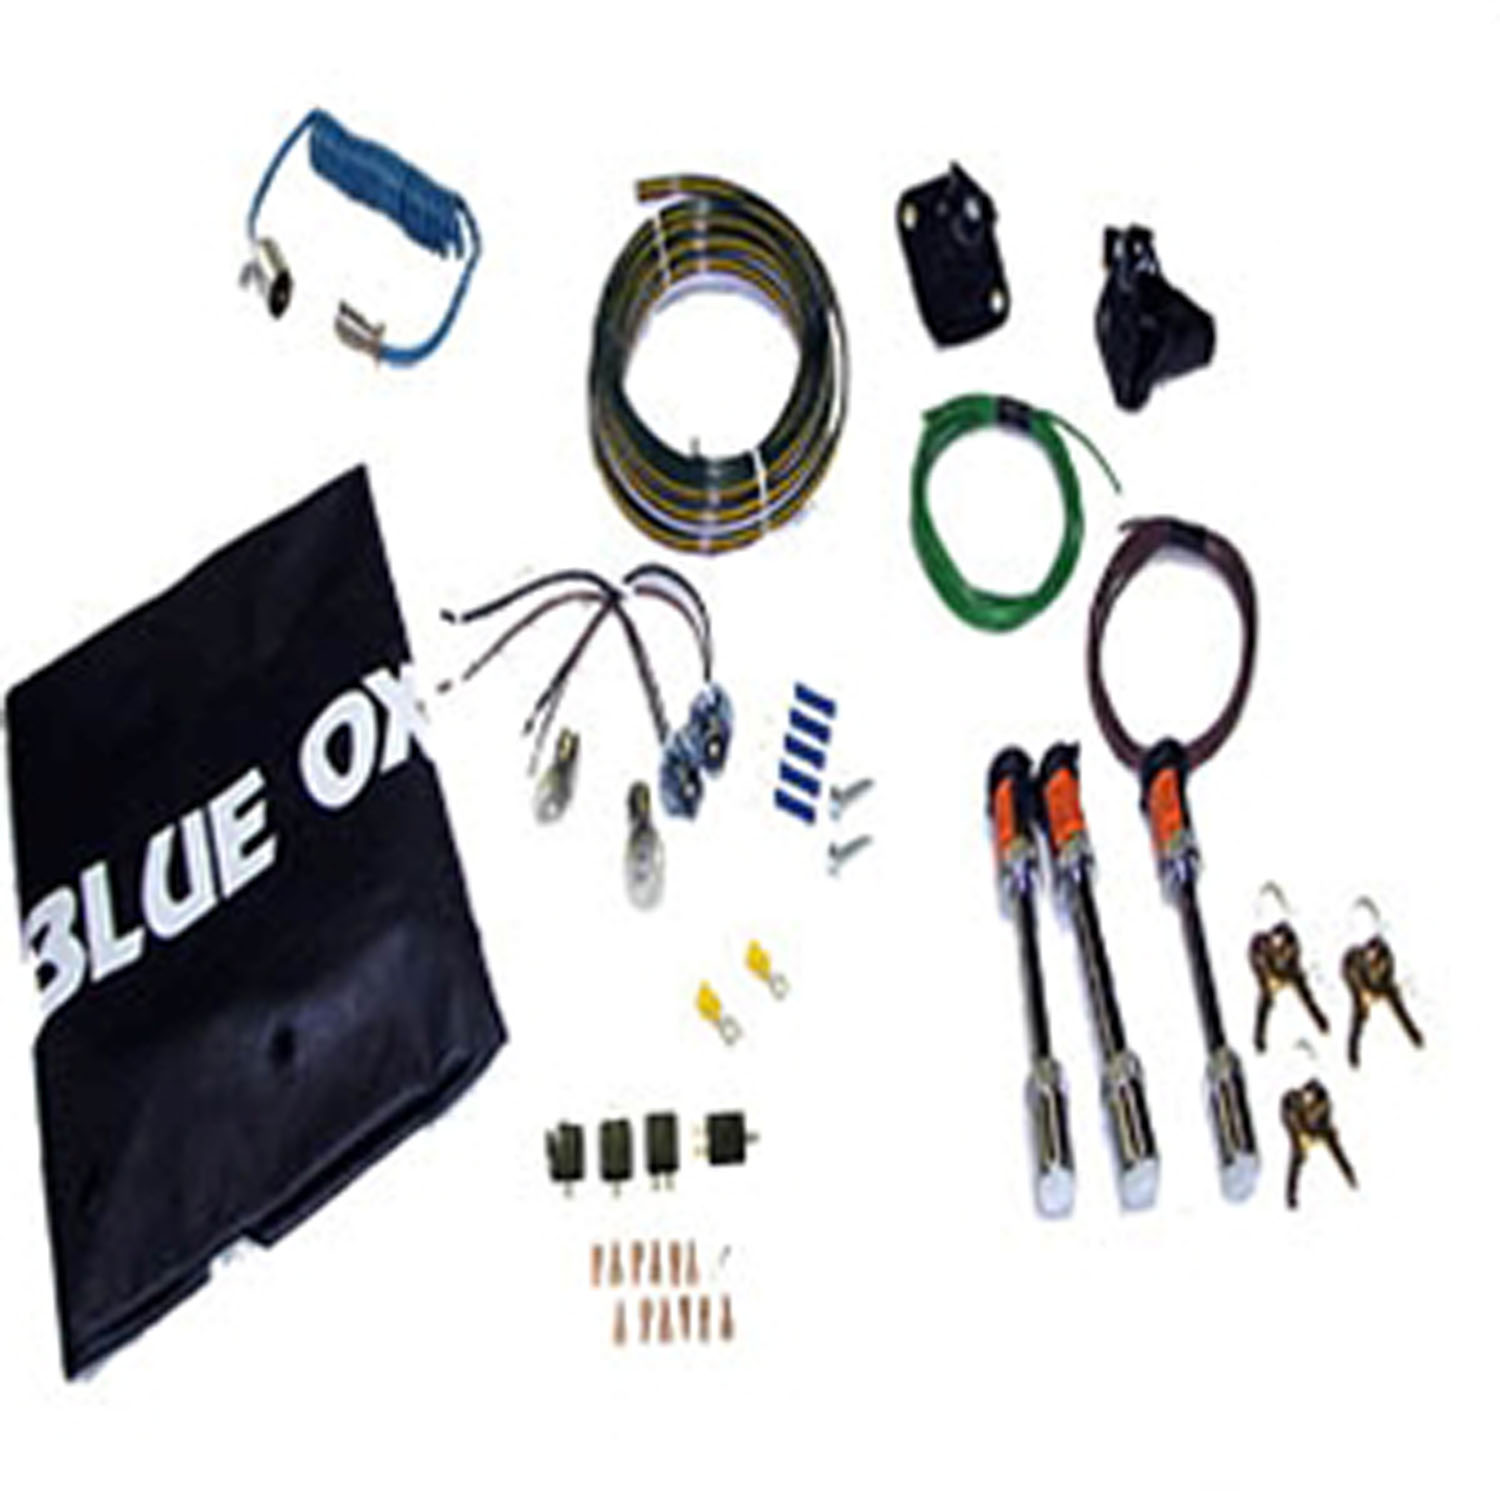 BX88231 Blue Ox Trailer Hitch Accessory Kit Includes Bulb and Socket